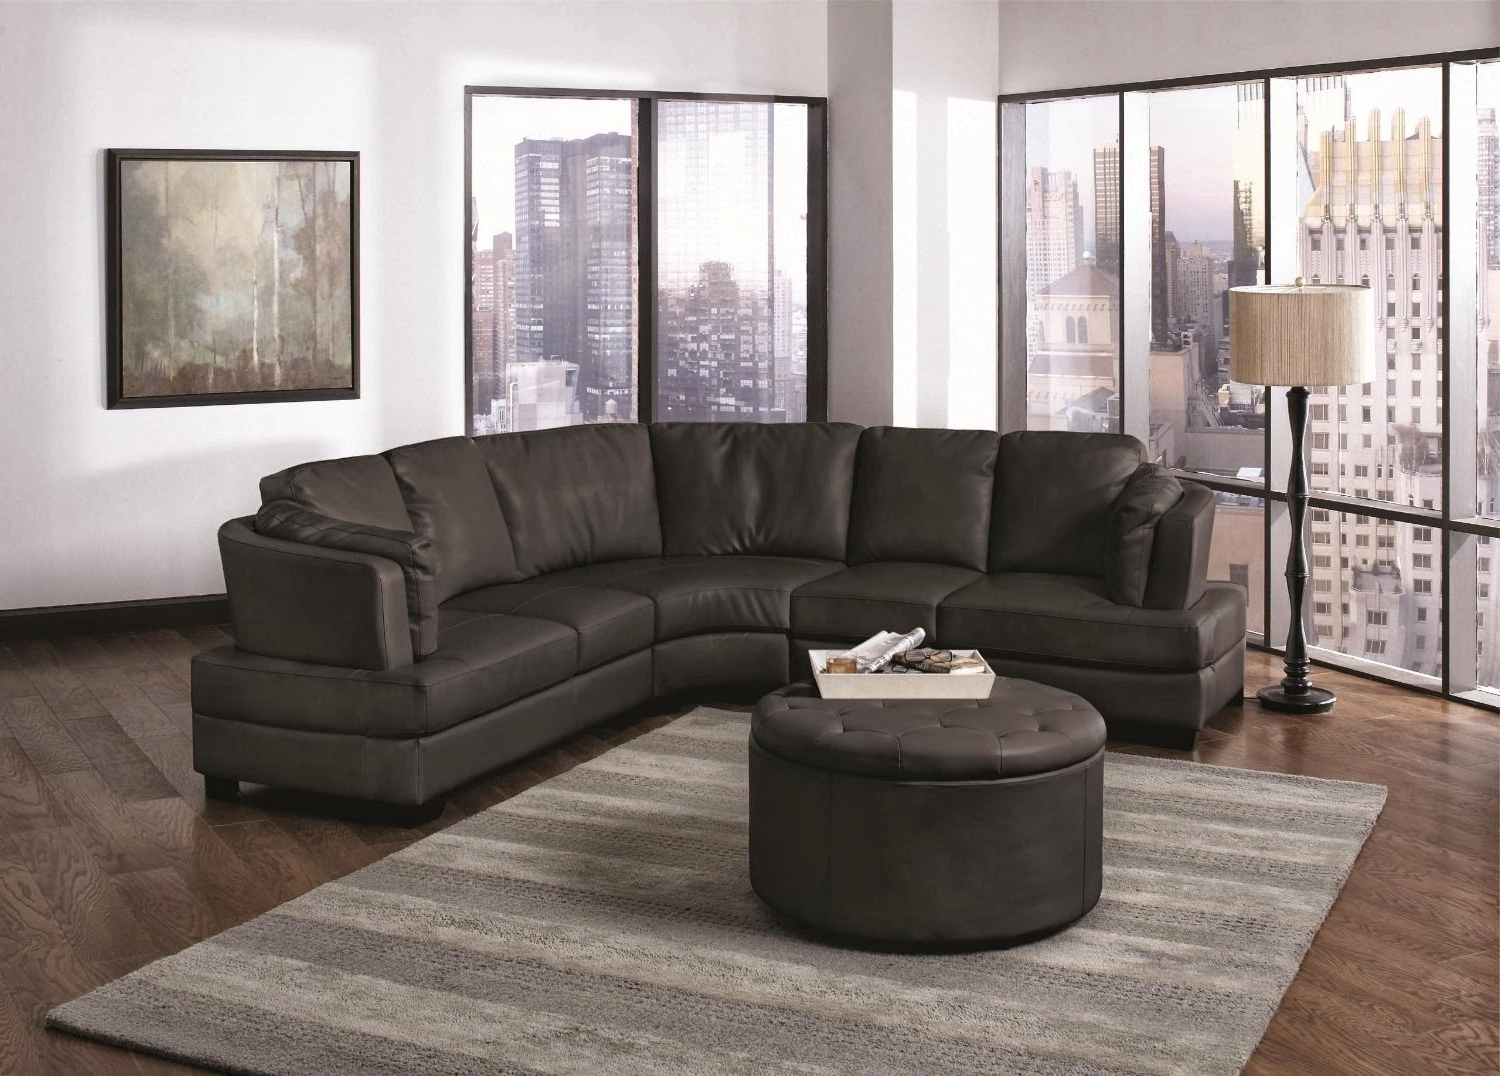 Sectional Sofas Decorating Pertaining To Best And Newest Ideas For Decorate With A Curved Sectional Sofa — Cabinets, Beds (View 12 of 20)